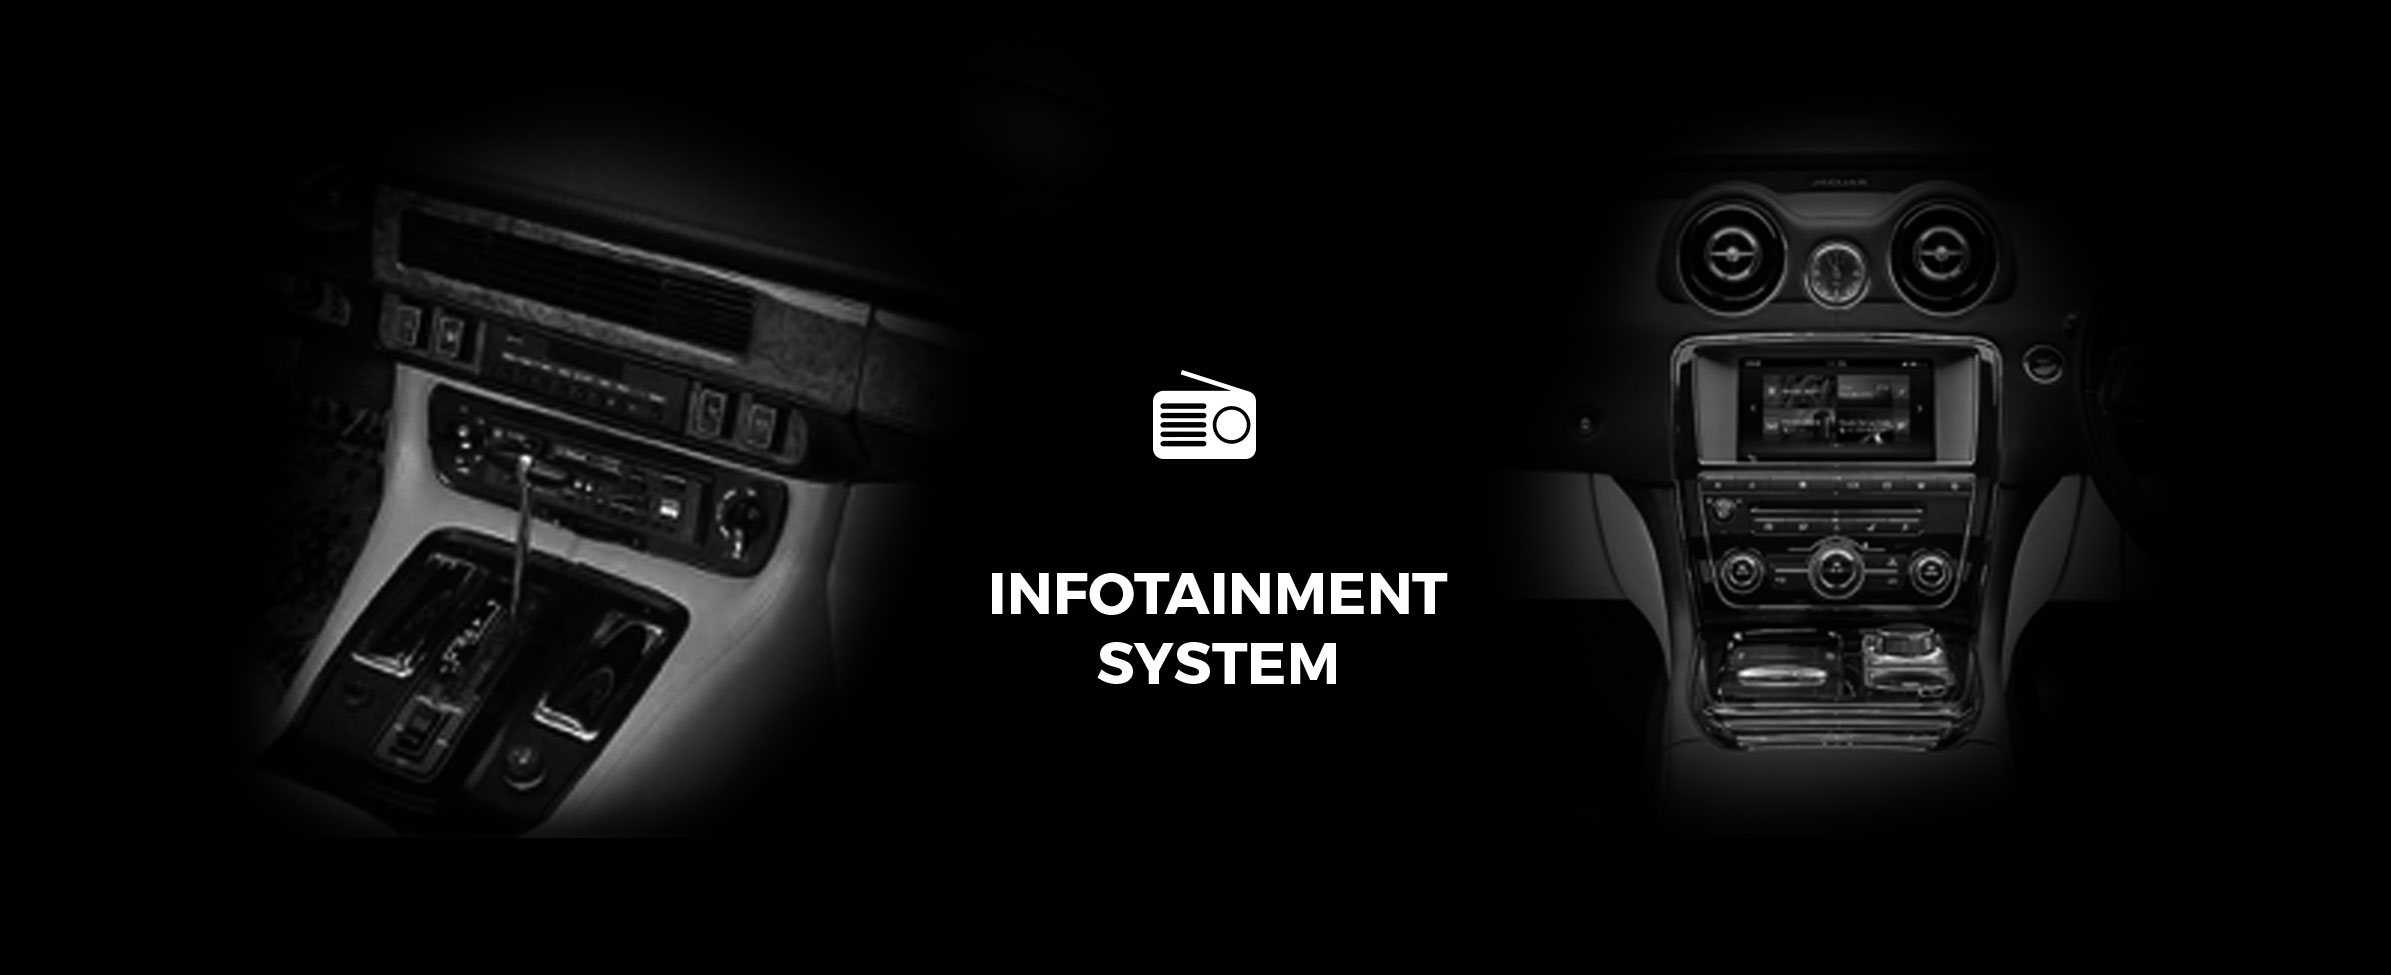 Infotainment system of 1968 and 2017 Jaguar XJ